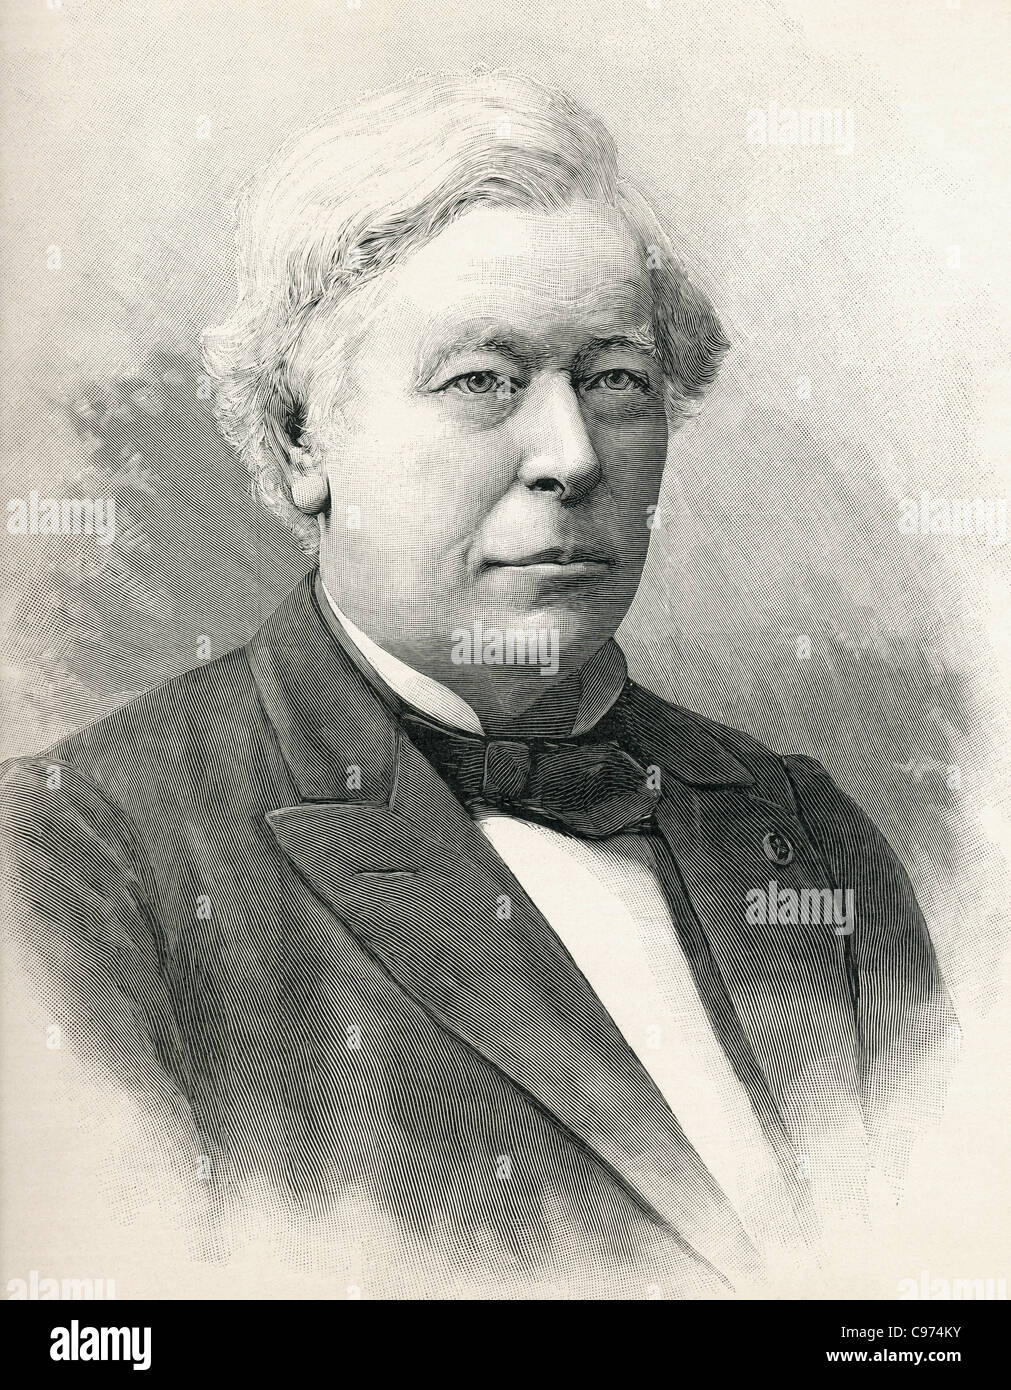 Hervé Auguste Étienne Albans Faye, 1814 – 1902. French astronomer. - Stock Image